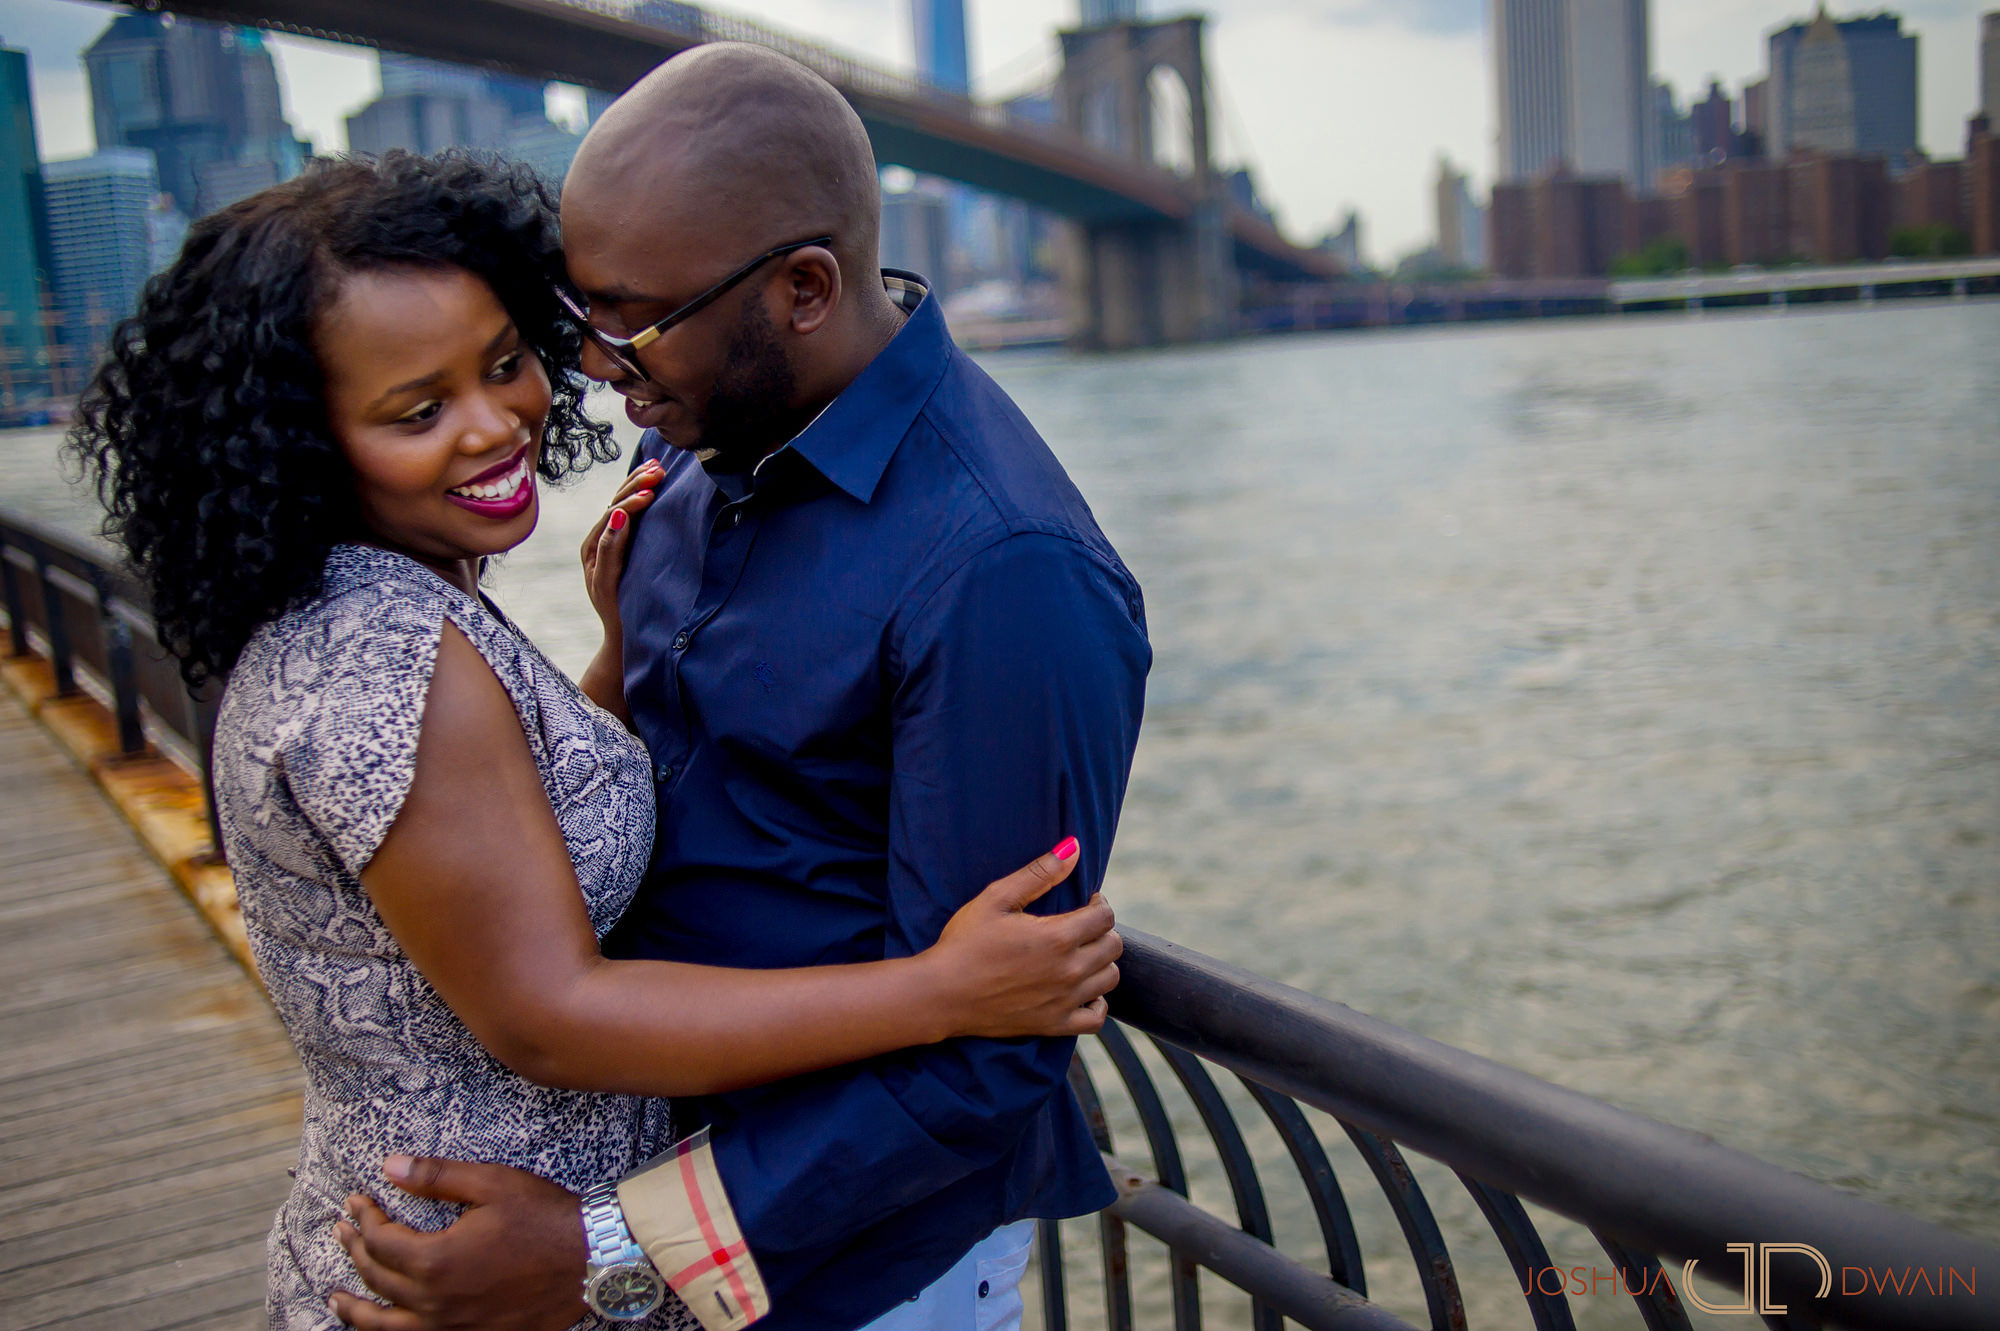 Kimberly & David's engagement in Dumbo, Brooklyn, NY